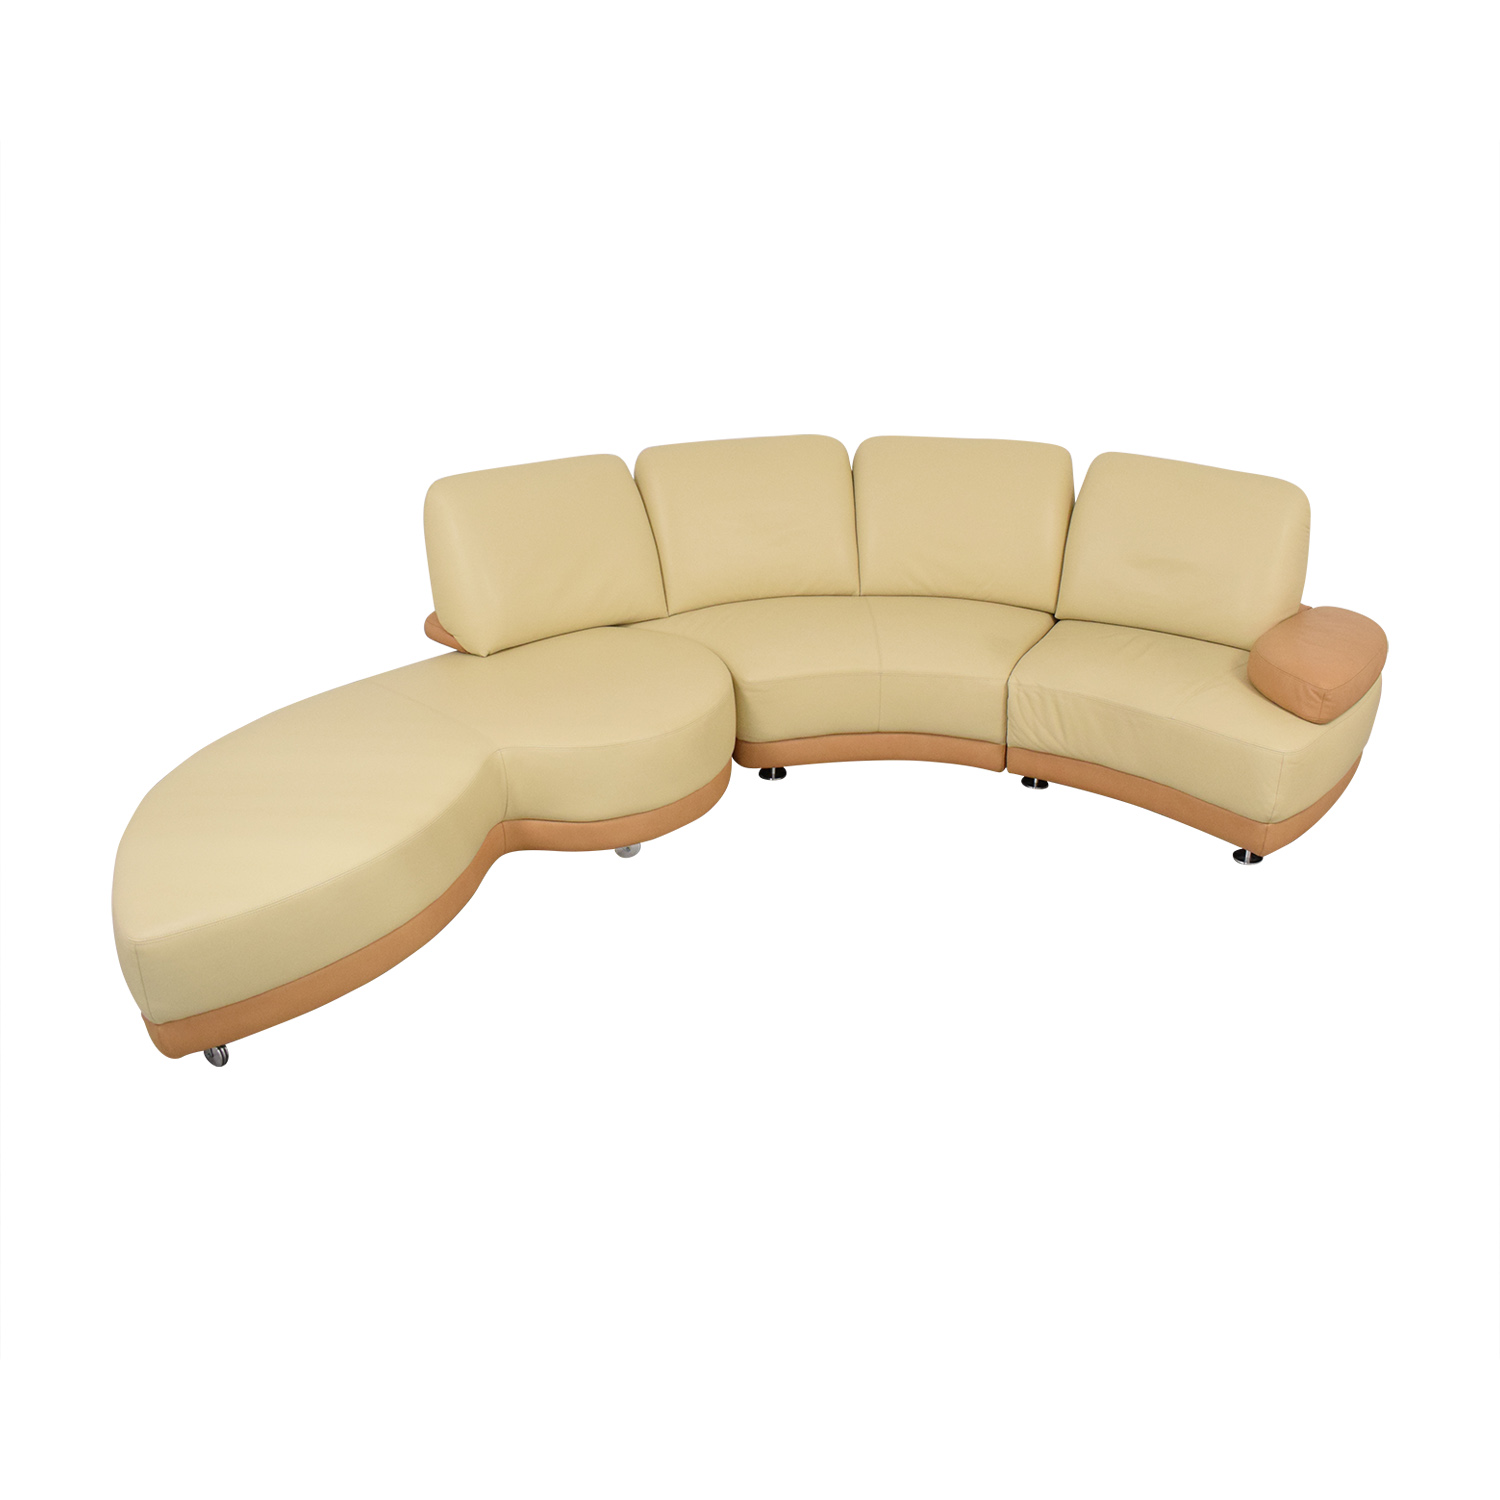 W. Schillig W. Schillig Crescent Shaped Sectional Sofa for sale